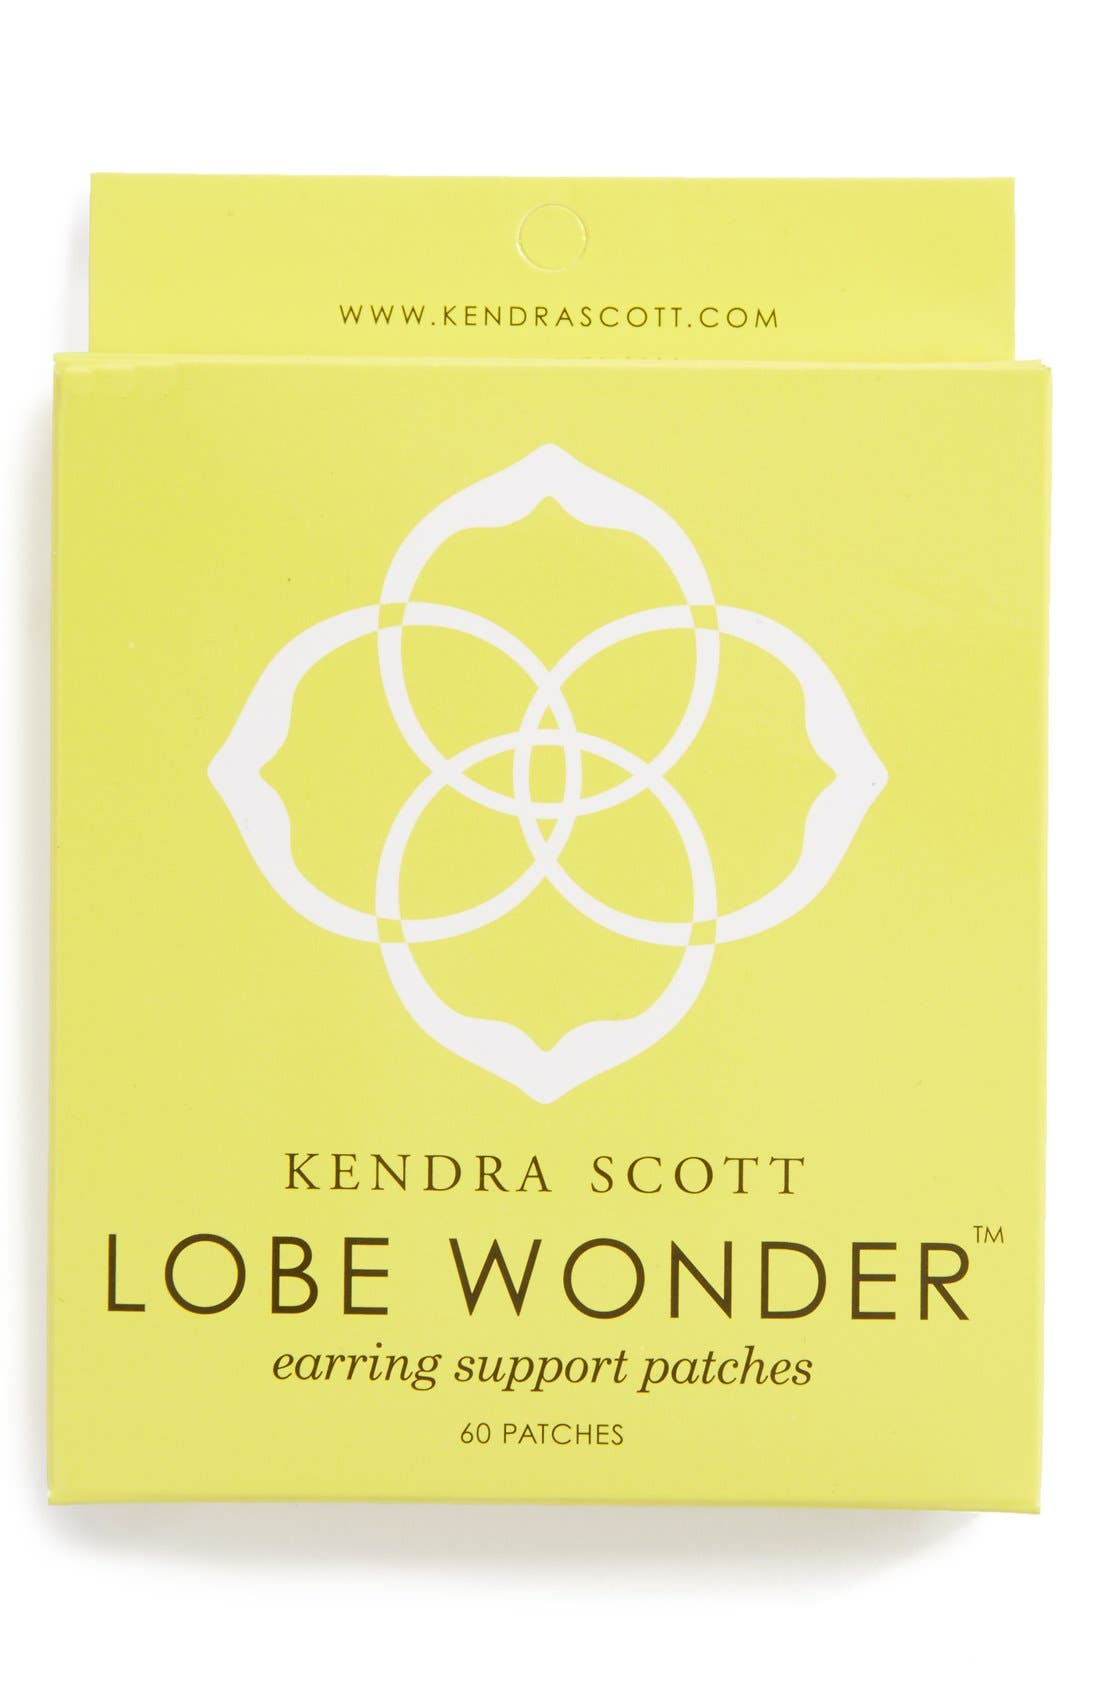 Alternate Image 1 Selected - Kendra Scott 'Lobe Wonder™' Earring Support Patches